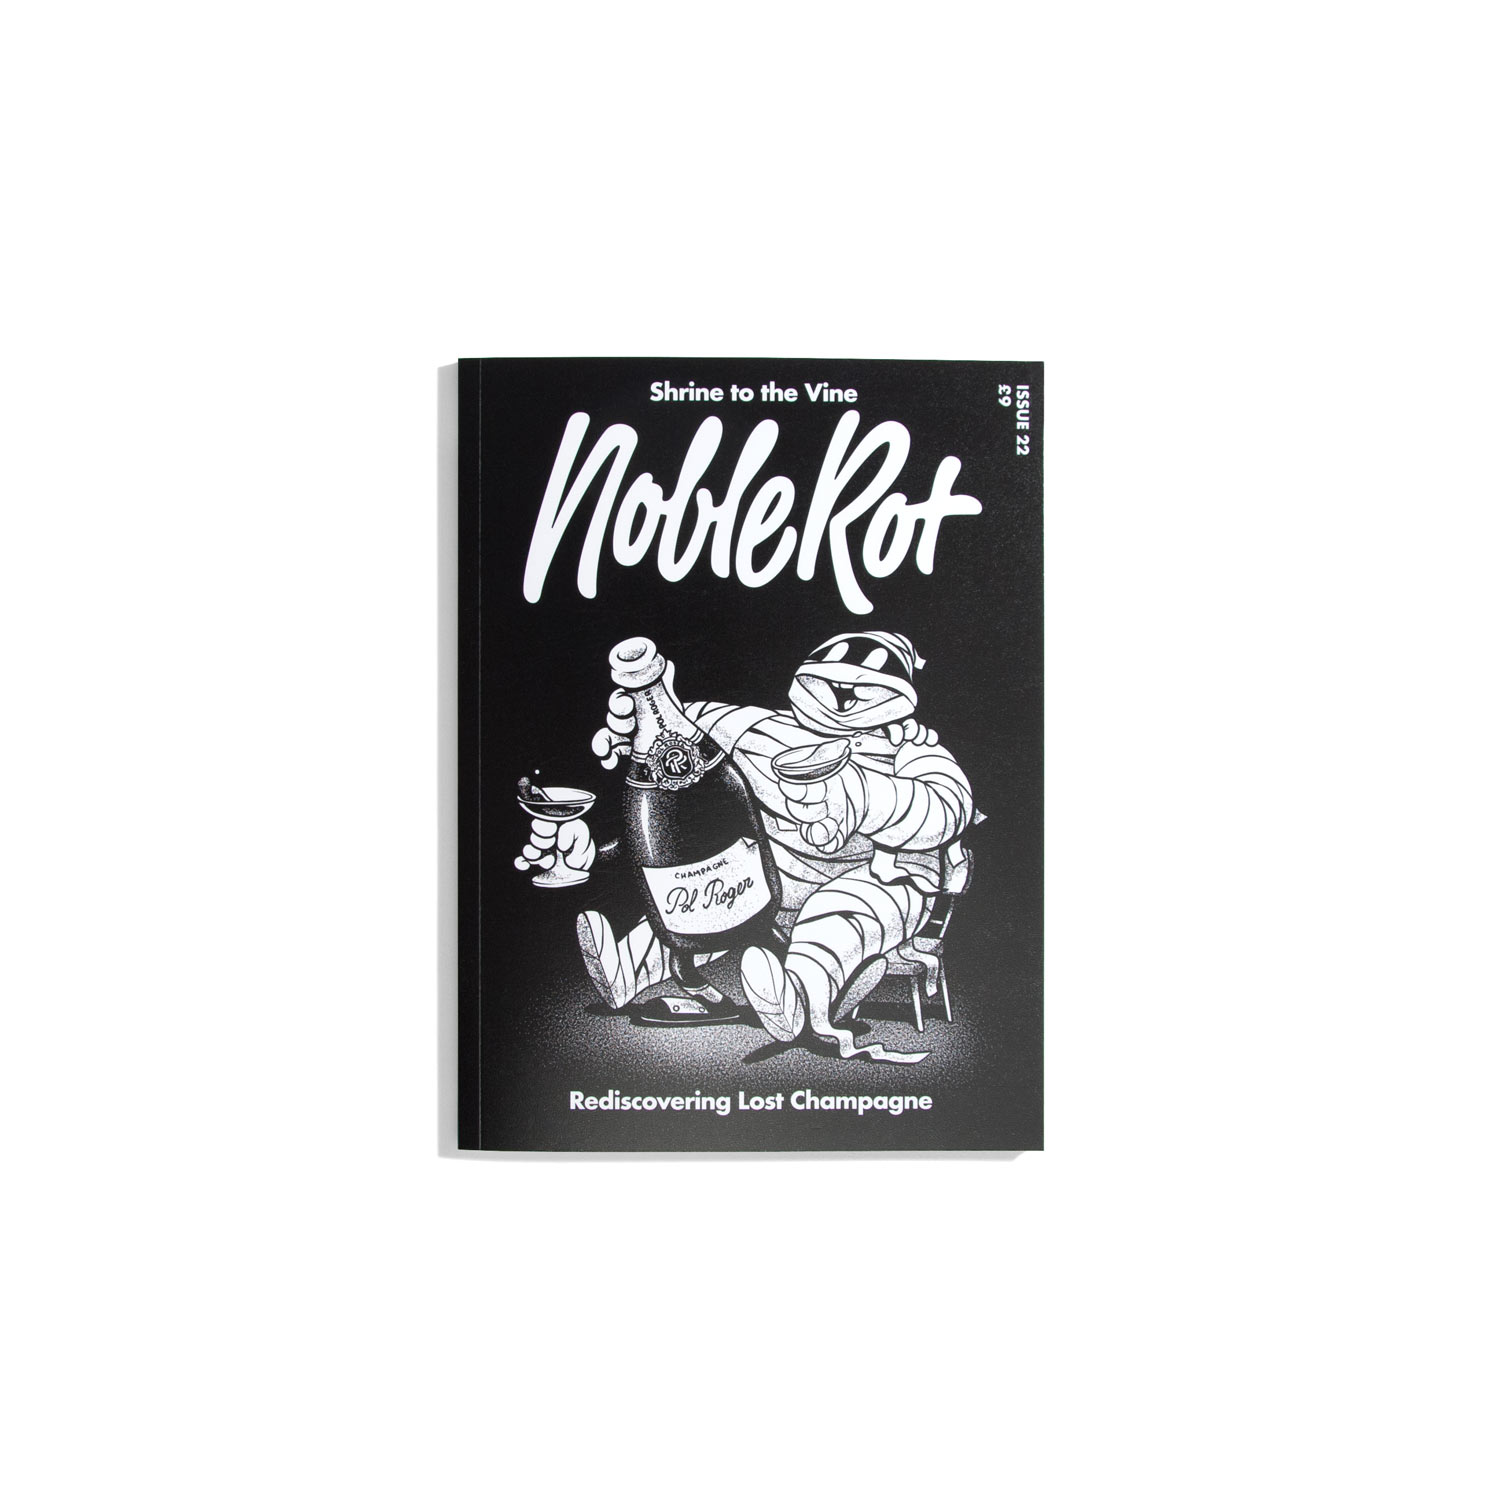 Noble Rot #22 2020